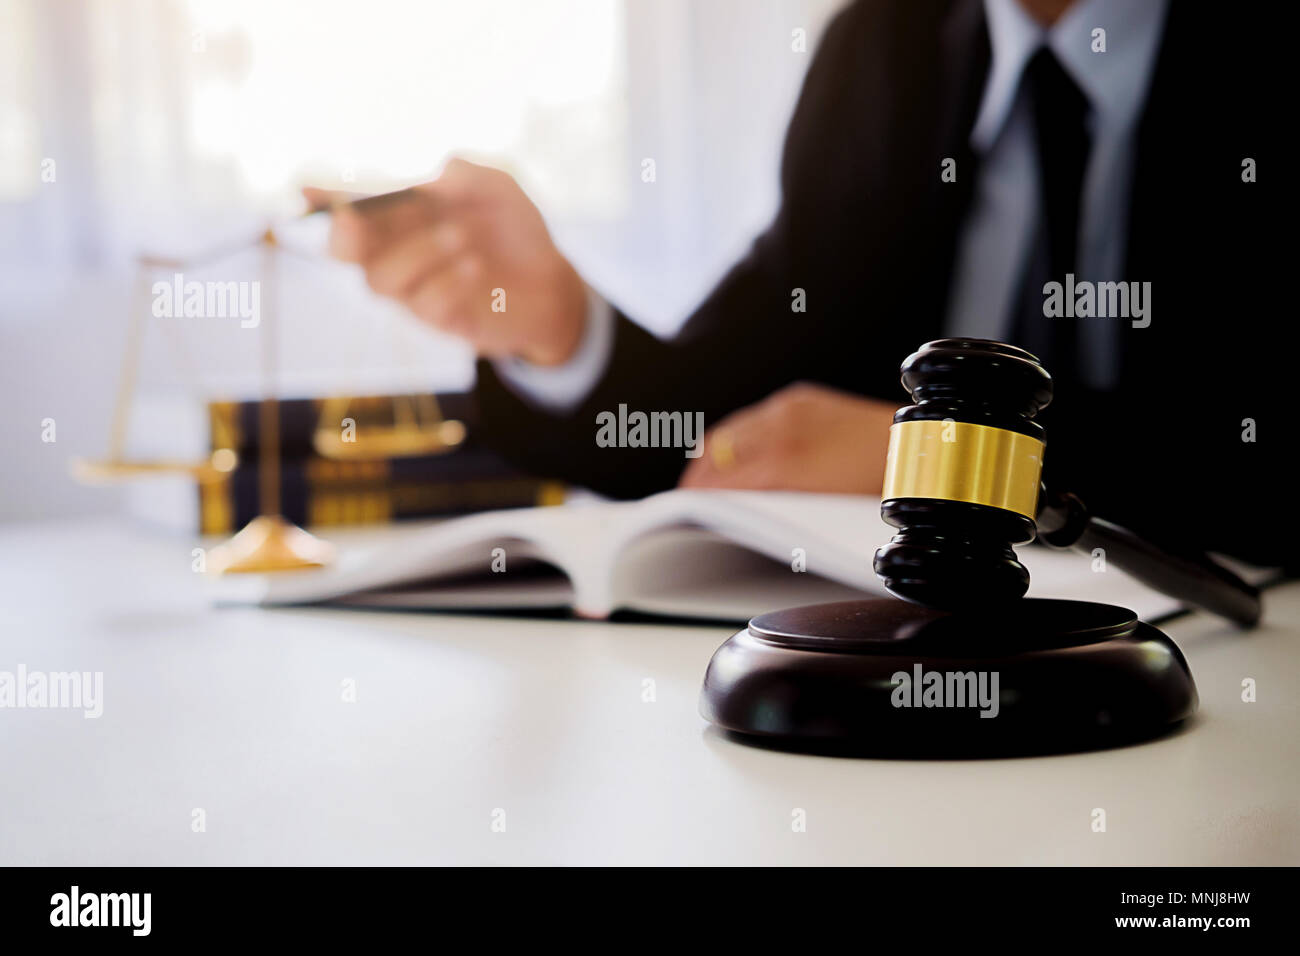 Justice and Law concept. Legal counsel presents to the client a signed contract with gavel and legal law or legal having team meeting at law firm - Stock Image